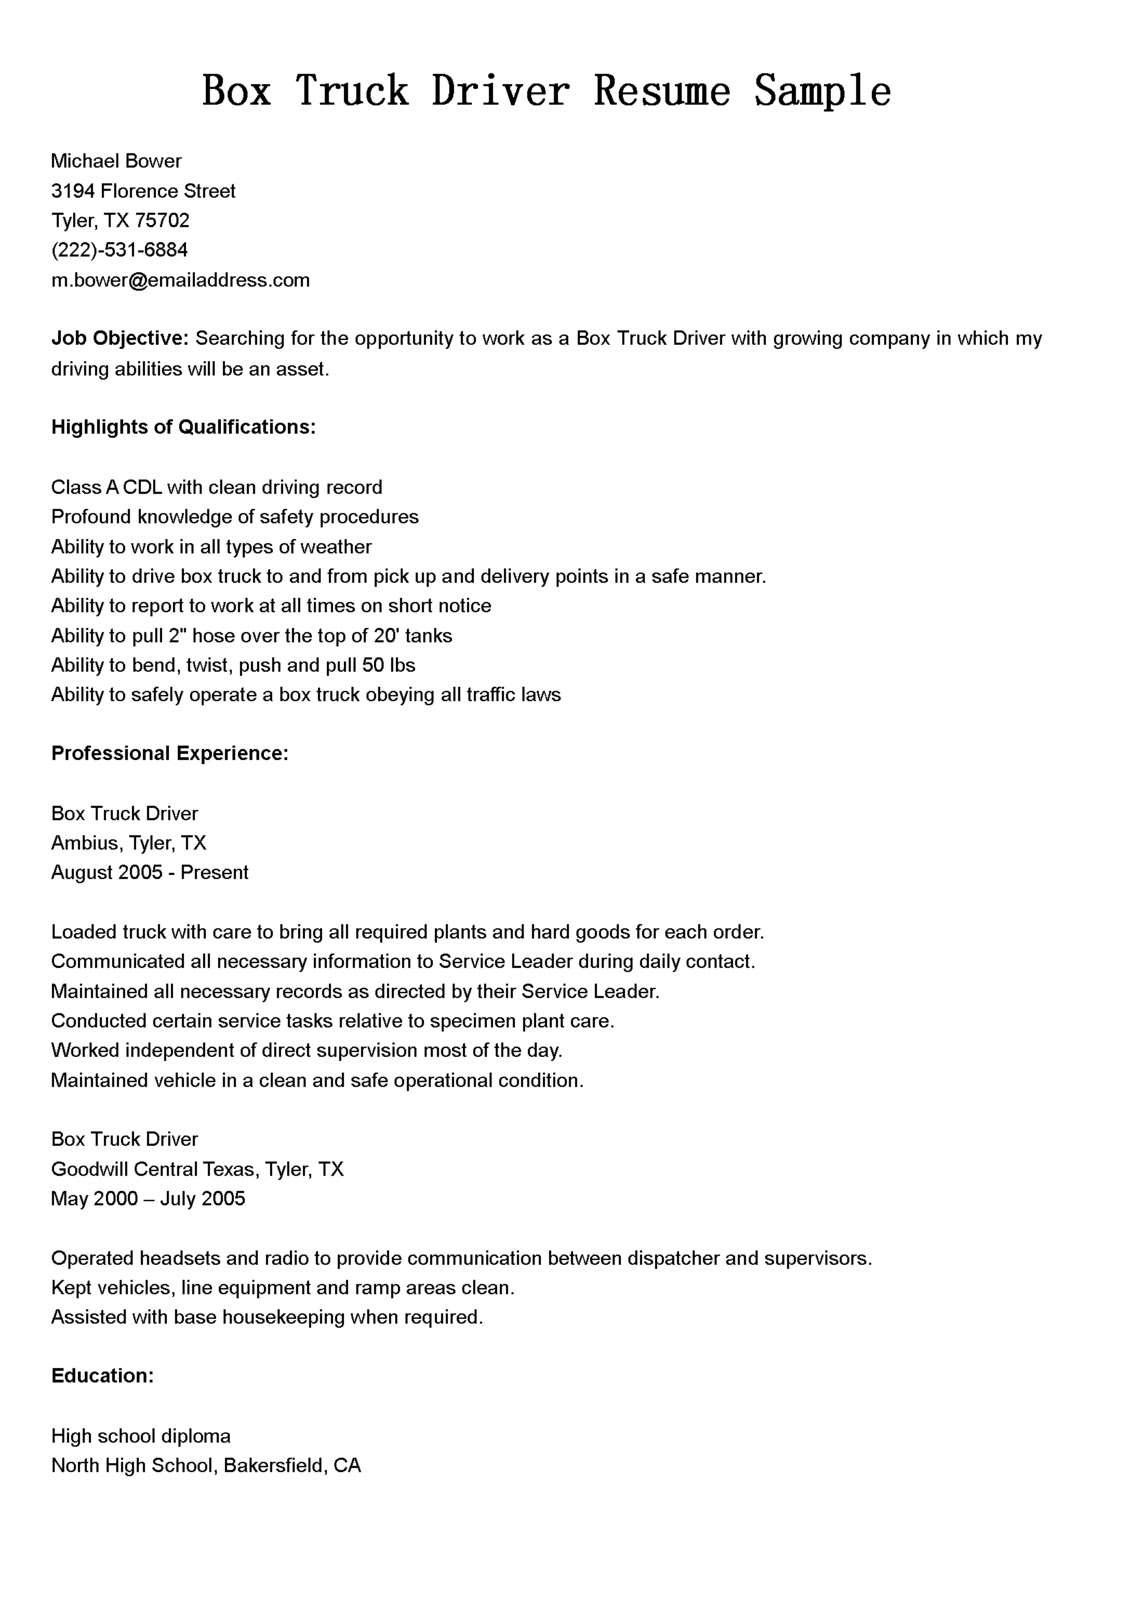 Driver Resumes: Box Truck Driver Resume Sample